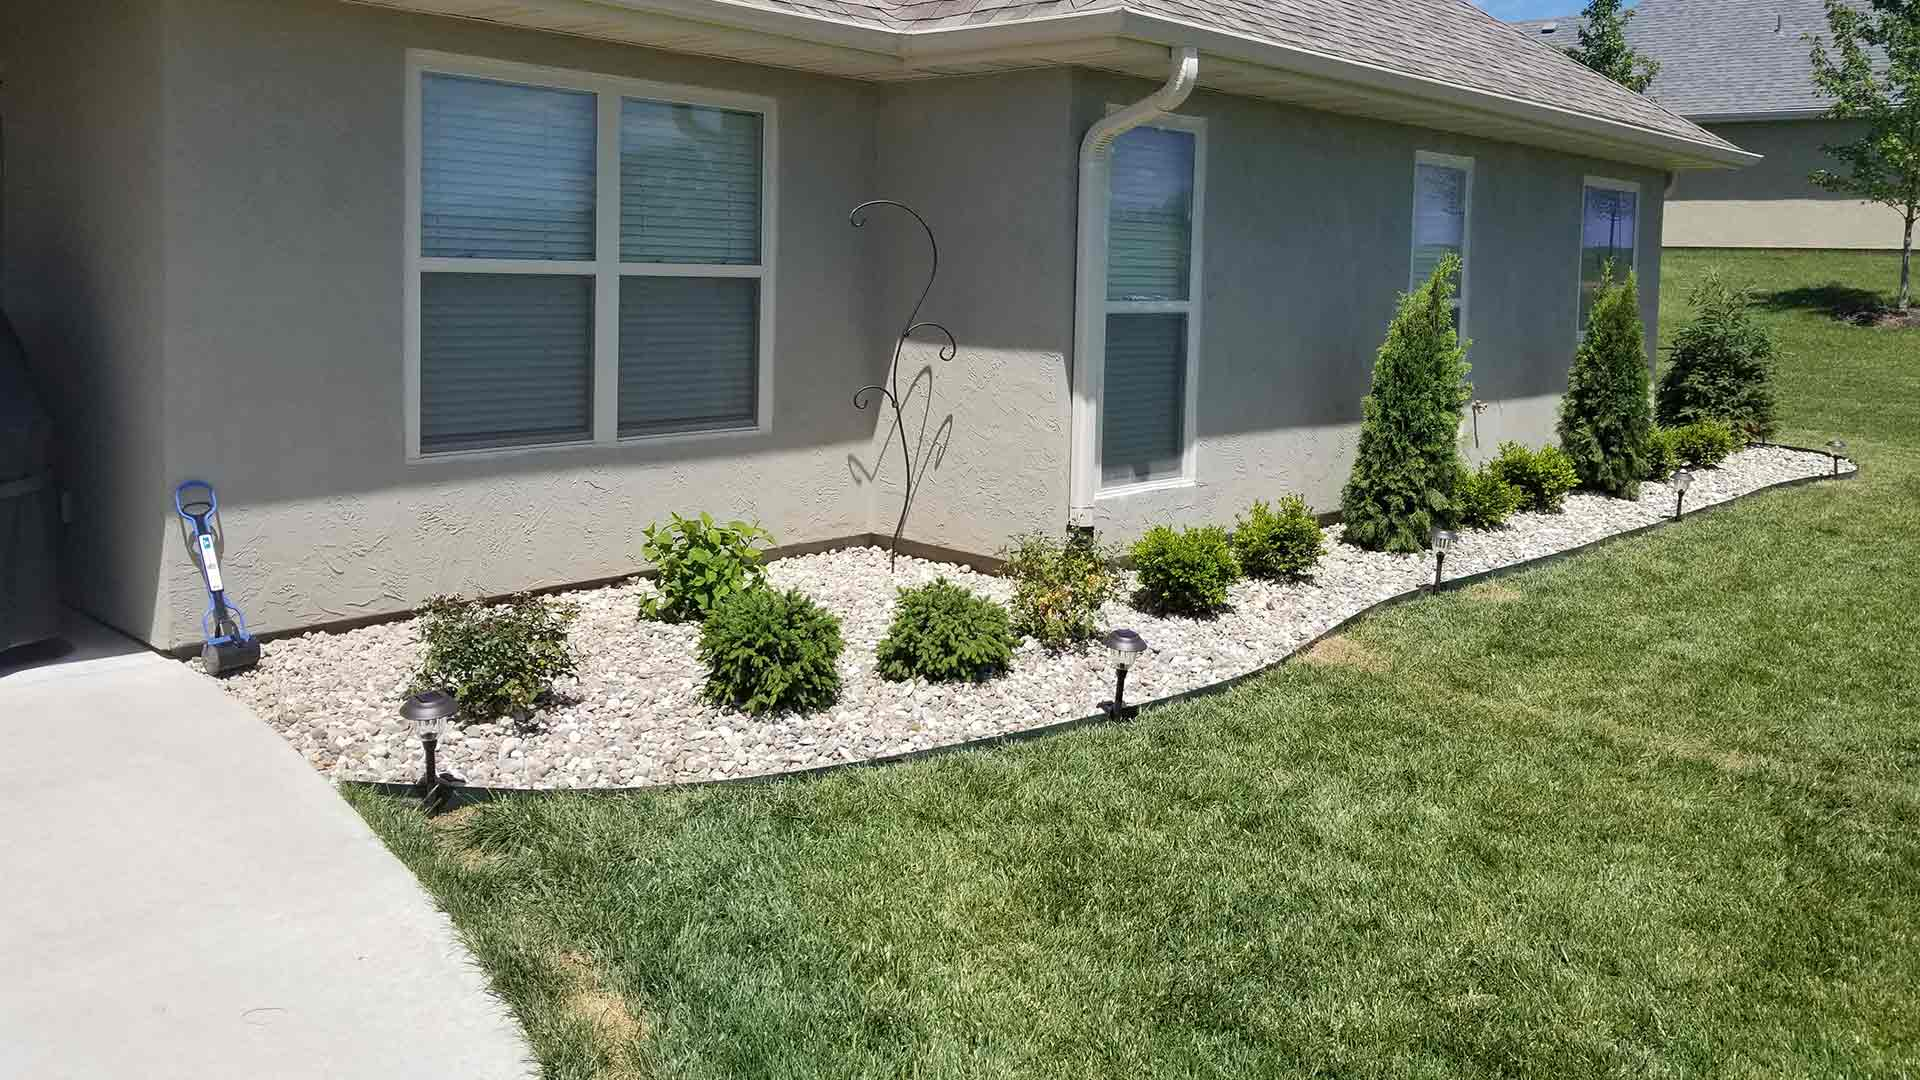 Columbia, MO home with freshly pruned bushes and rock installed by McVey Mowing.